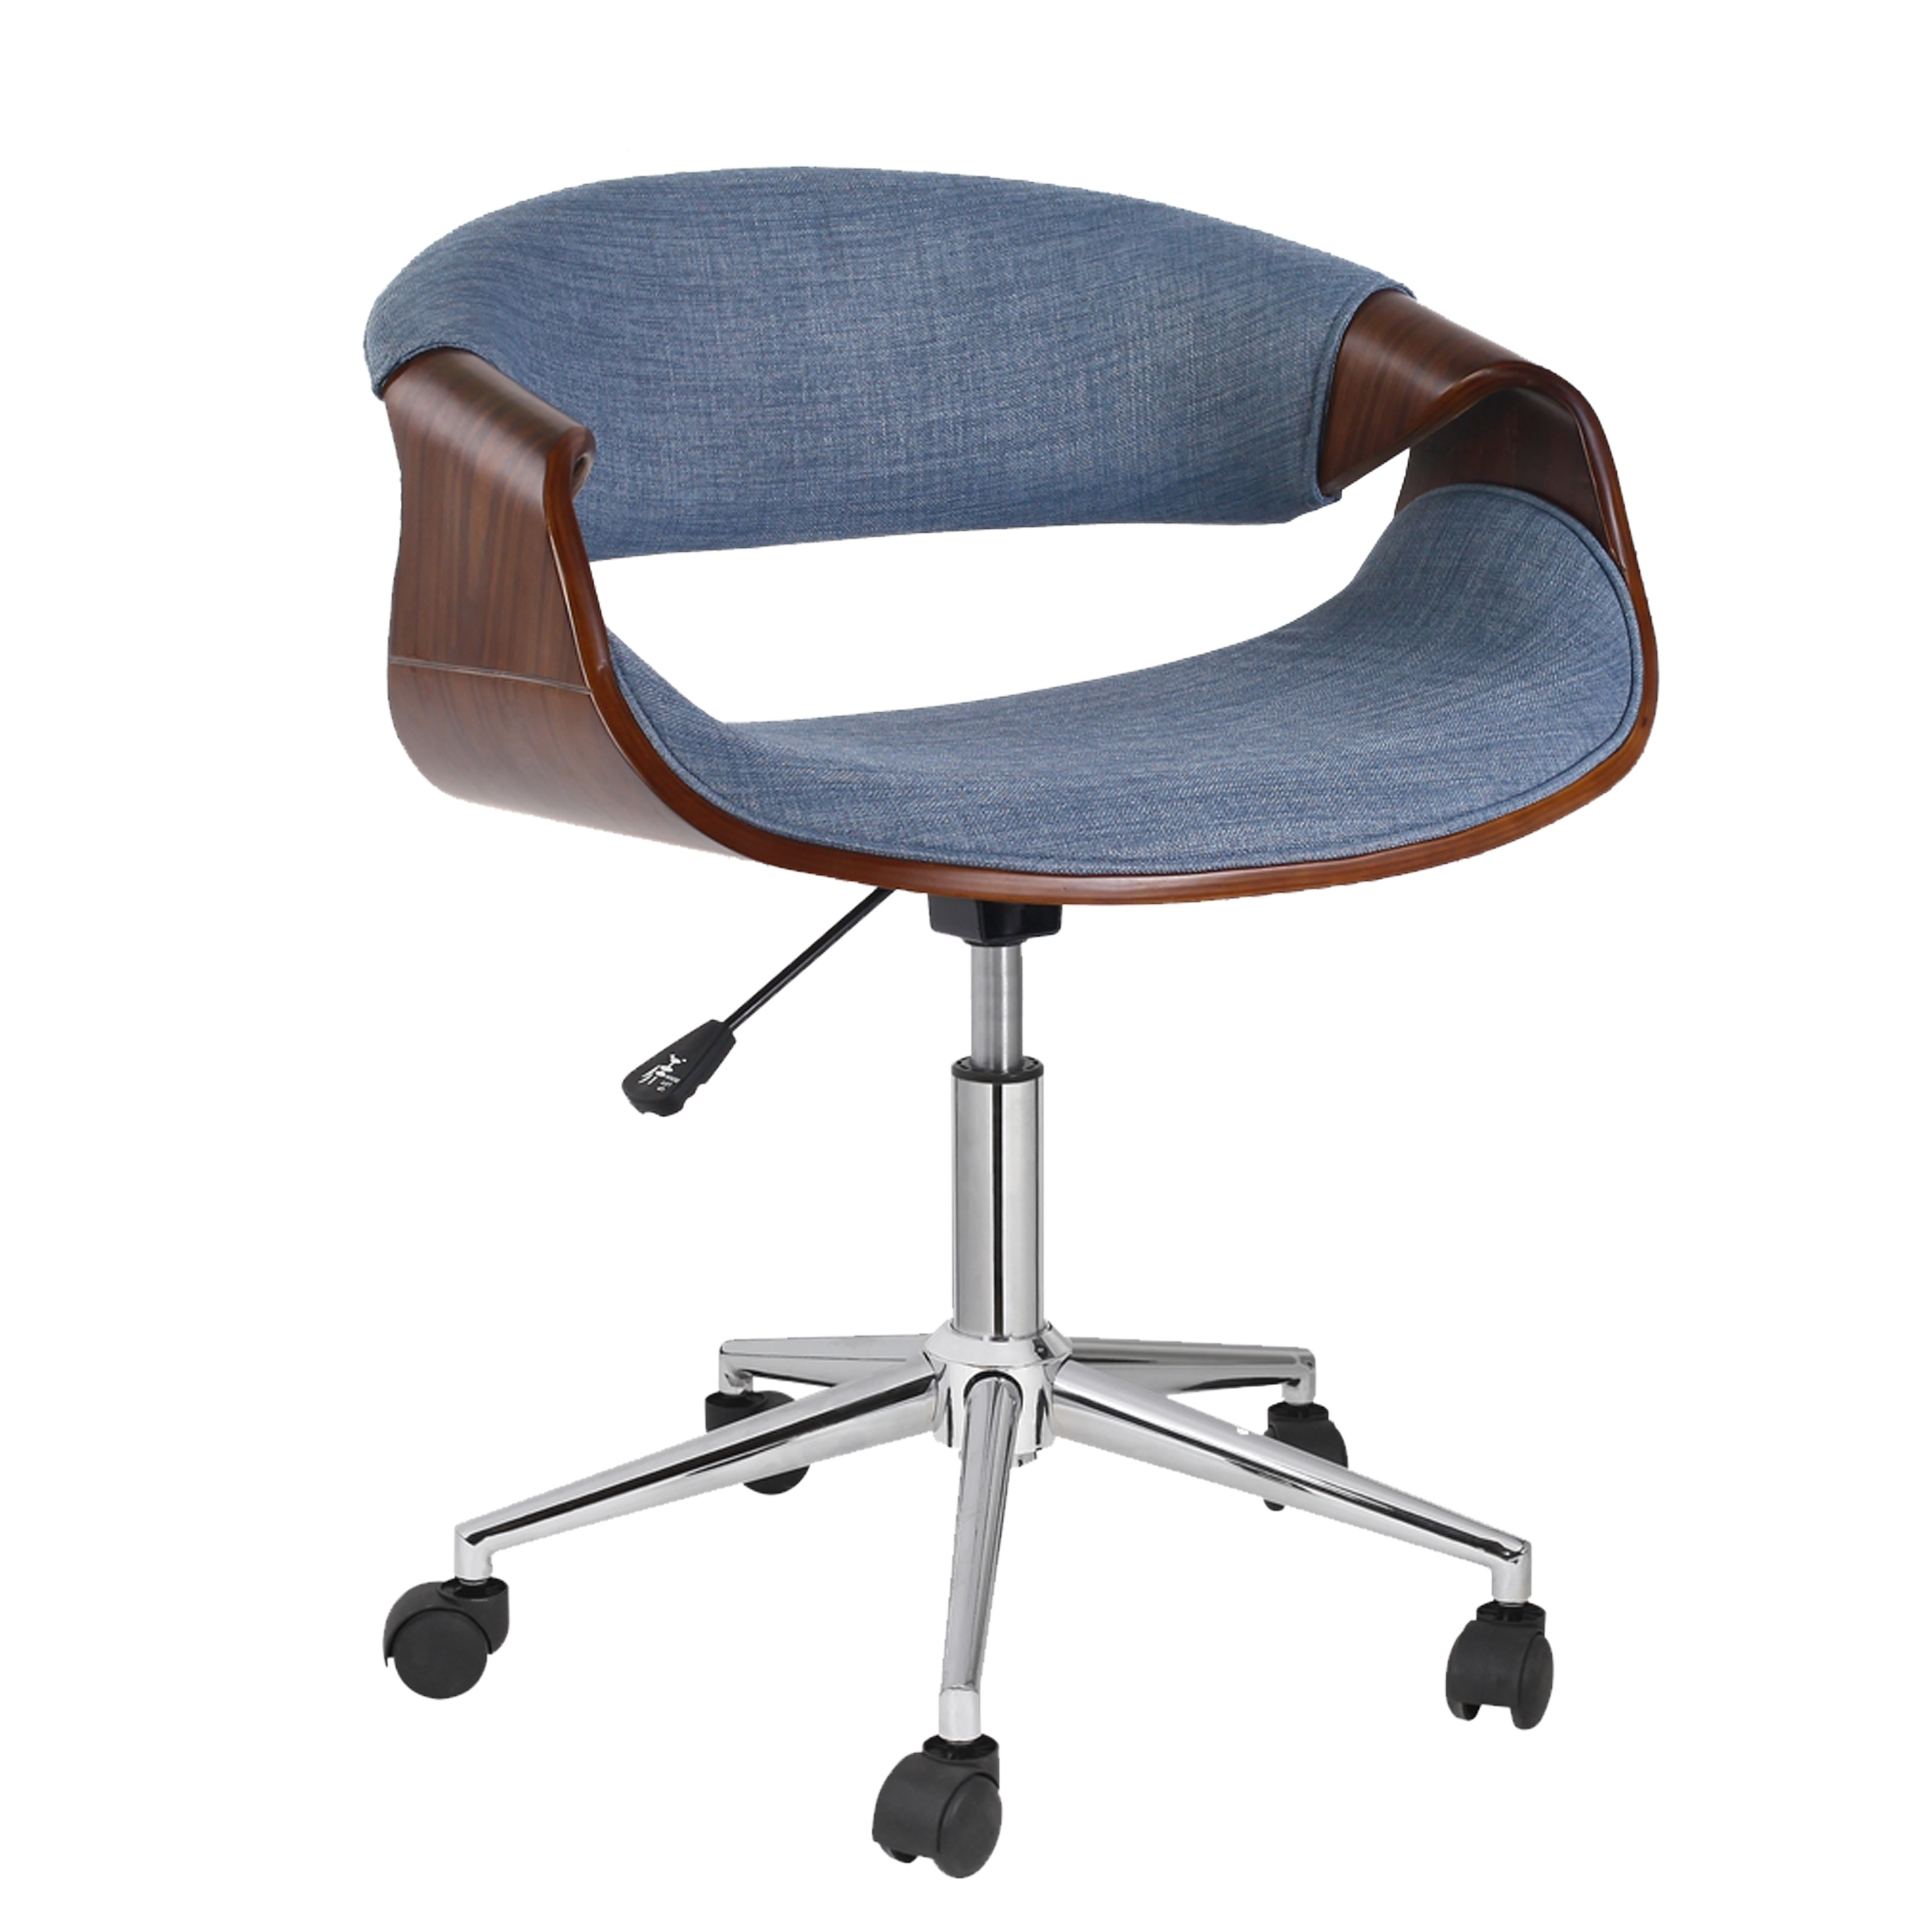 Porthos Home Adjule Office Chair With Fabric Upholstery And Wheels